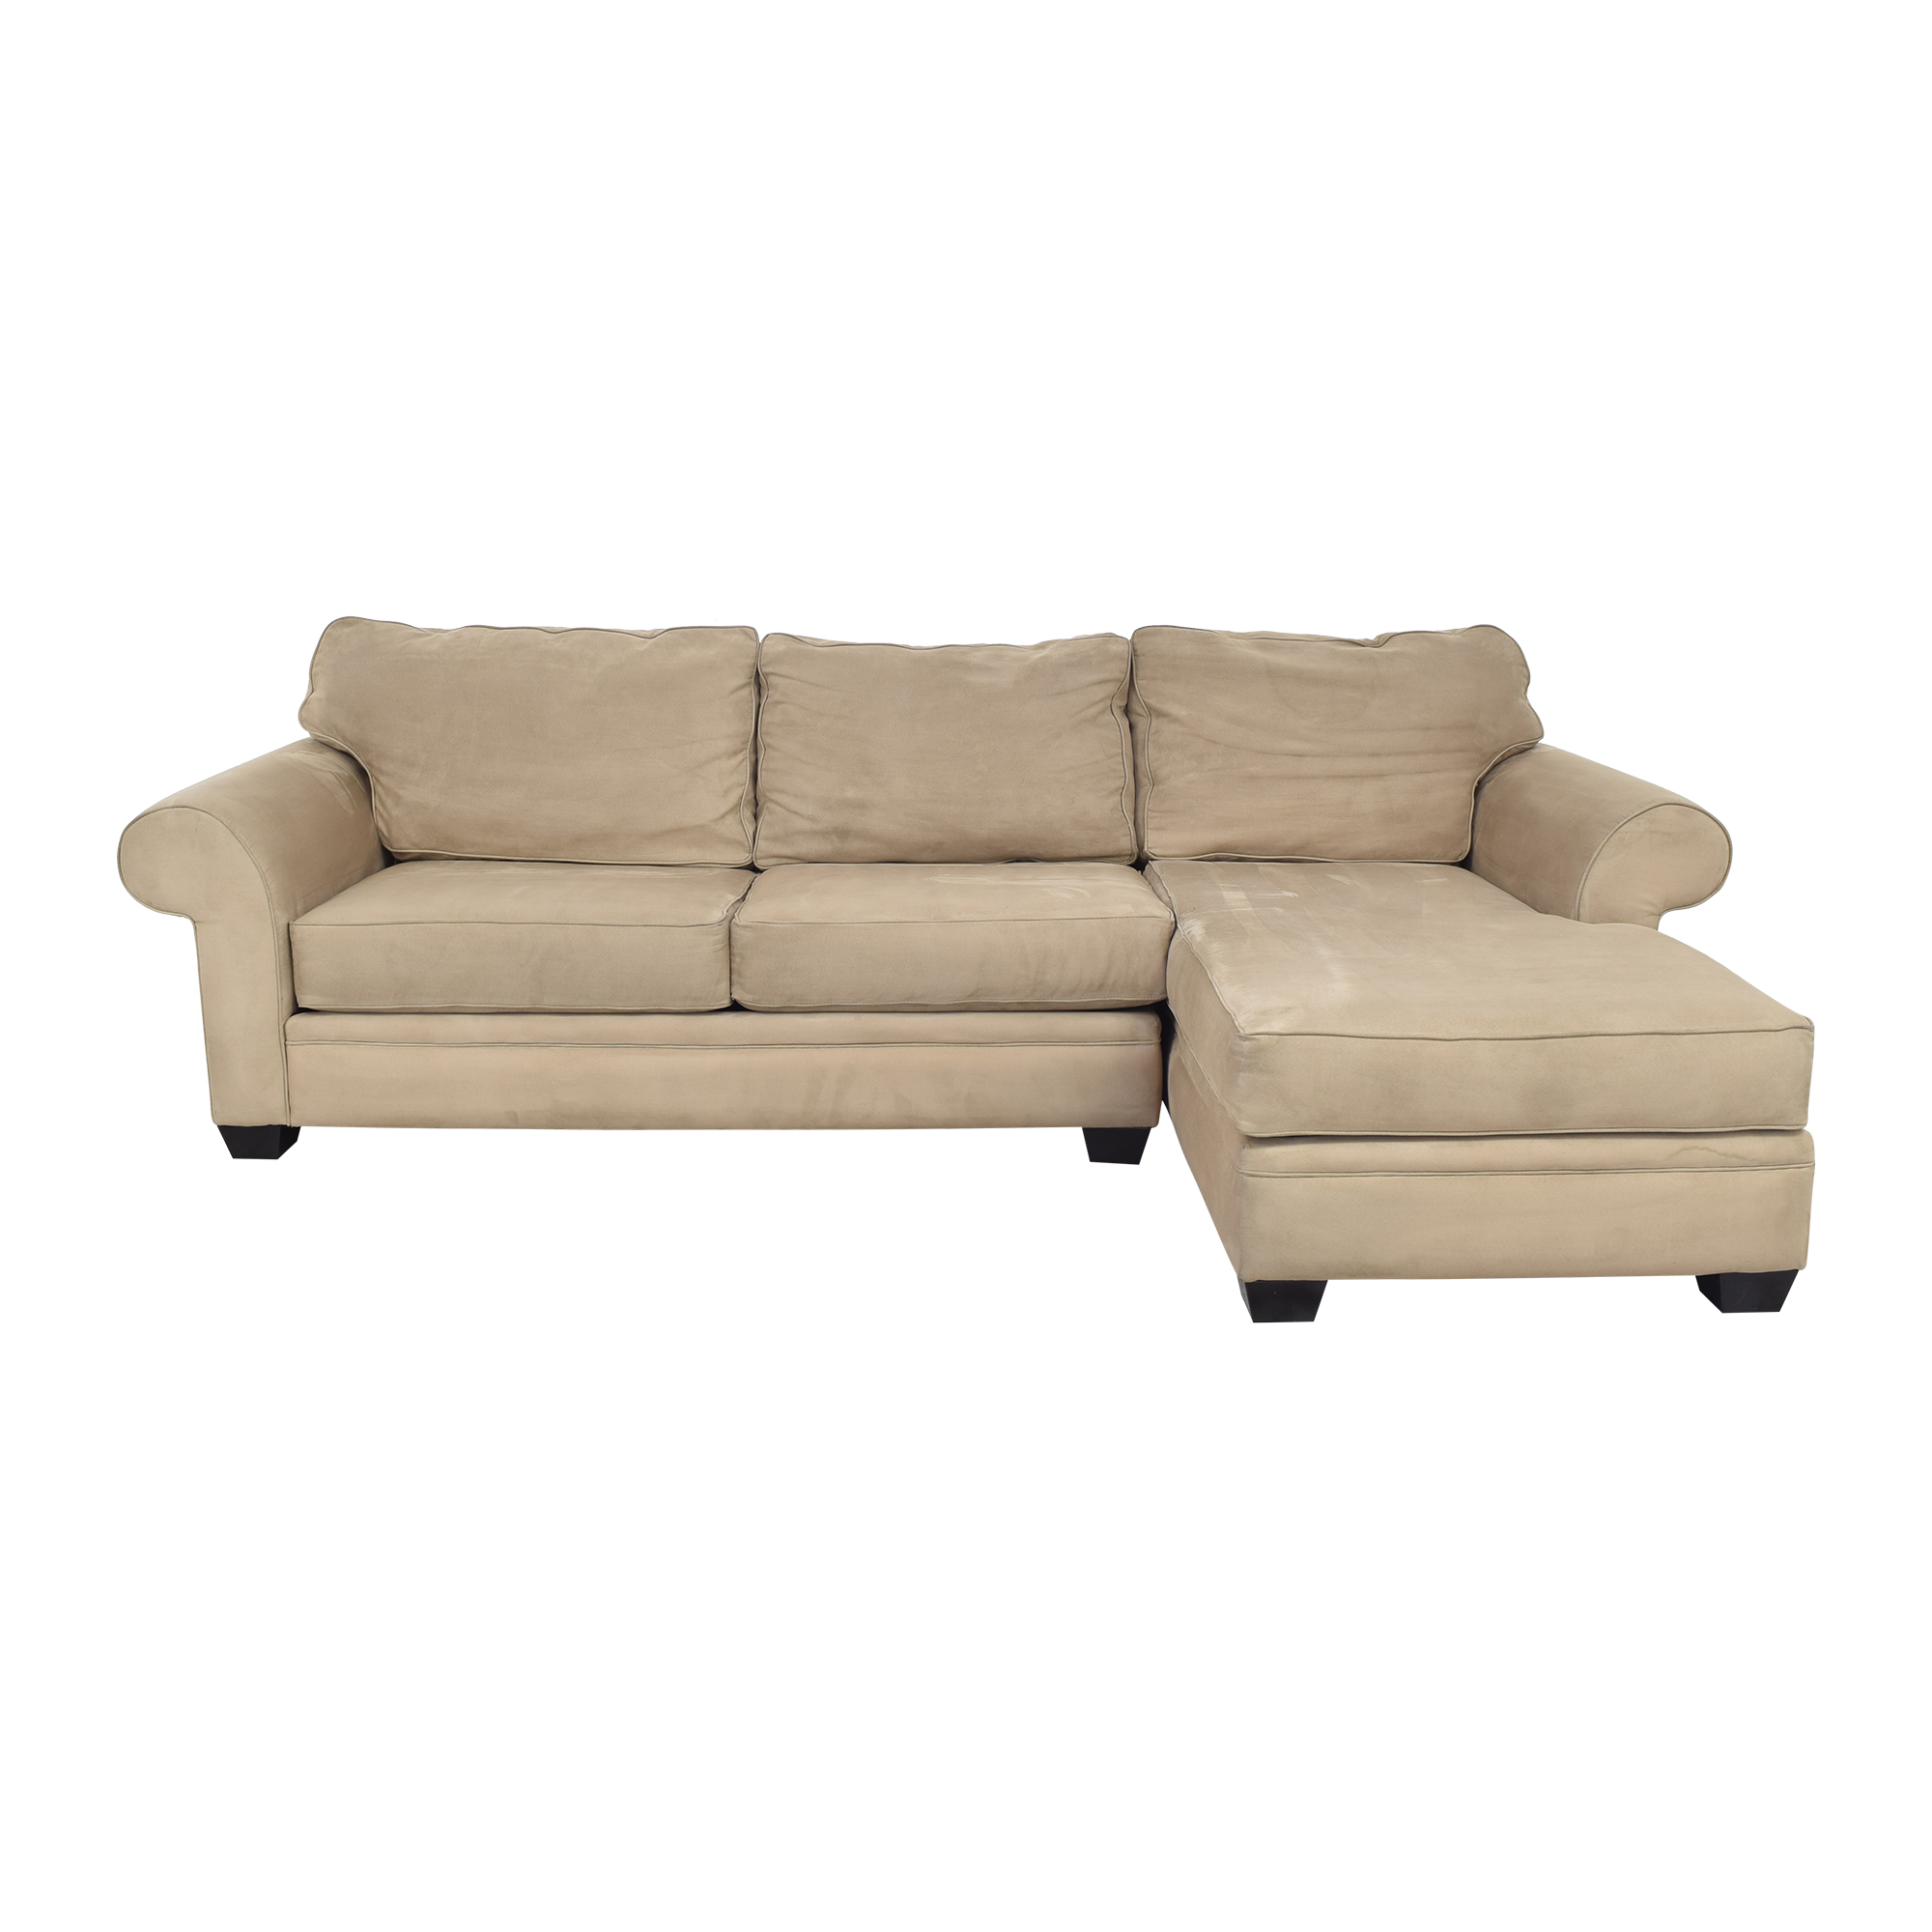 Macy's Jonathan Louis Chaise Sectional Sofa ma